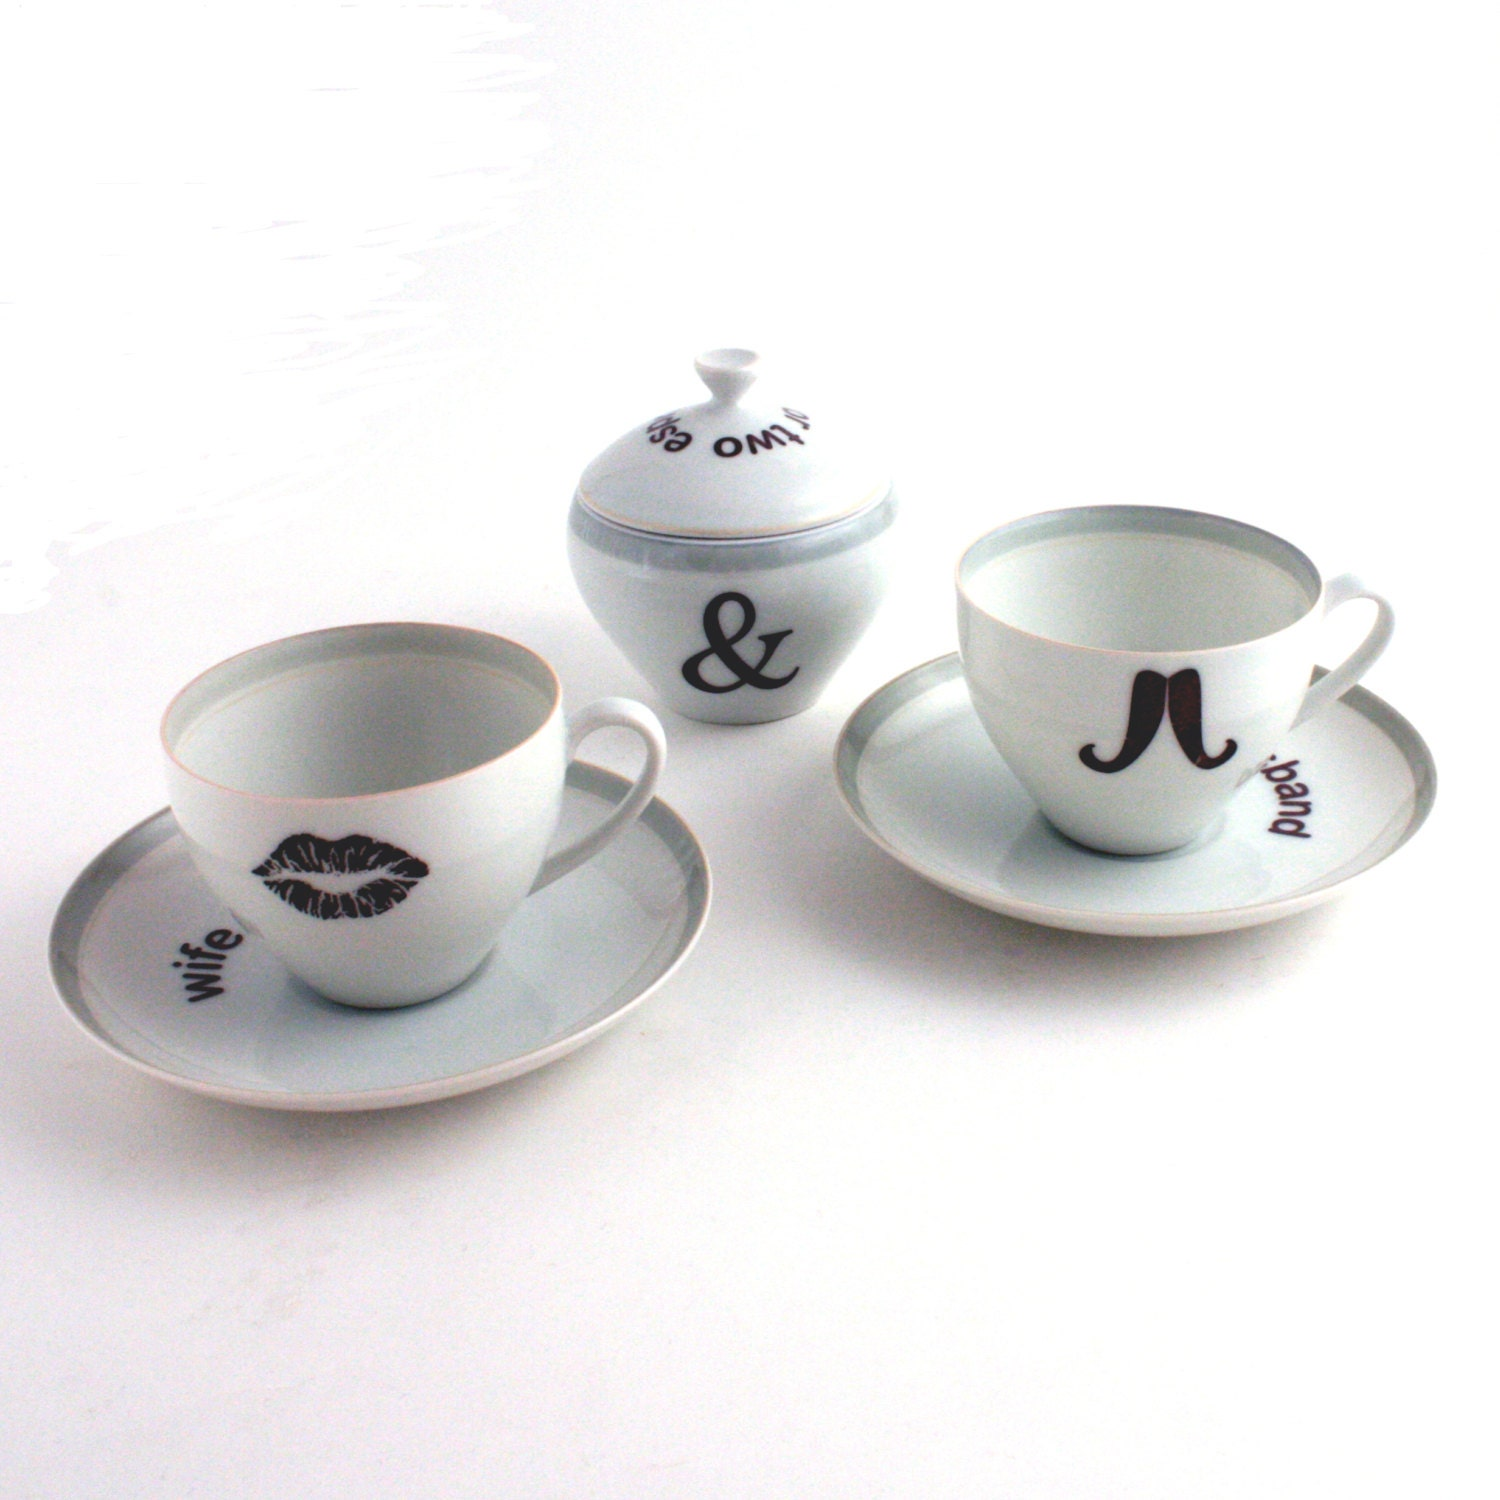 Husband & Wife Couple Redesigned  2 Coffee Espresso Cups with Saucers and Sugar Pot Porcelaiin Moustache  Lips Vintage White Wedding Present - MoreThanPorcelain